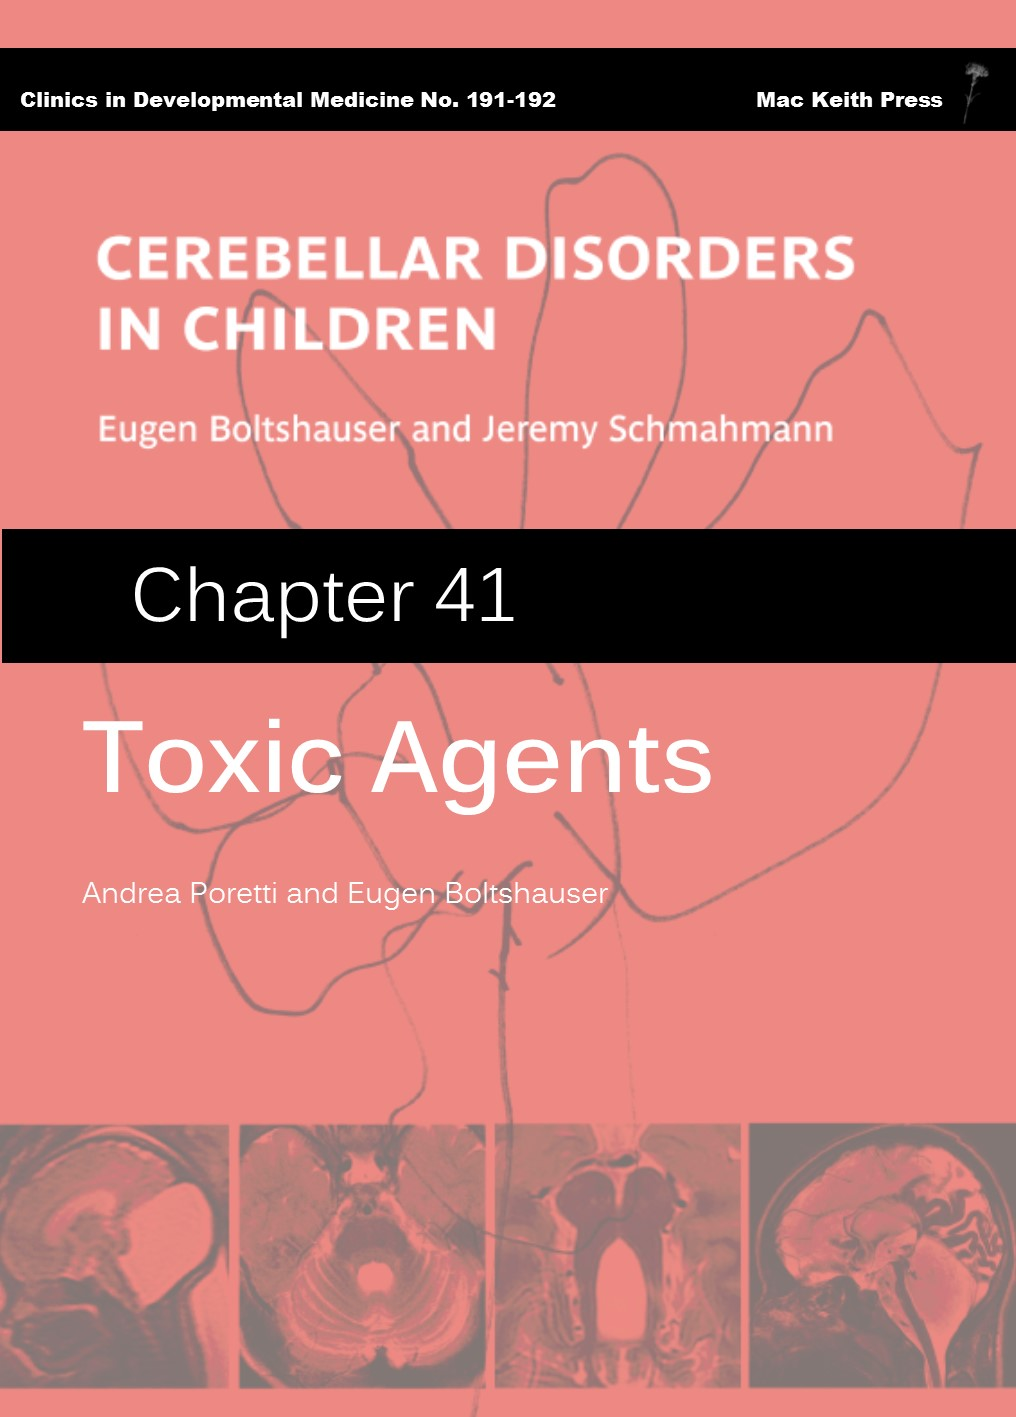 Toxic Agents - Cerebellar Disorders in Children (Chapter 41) COVER